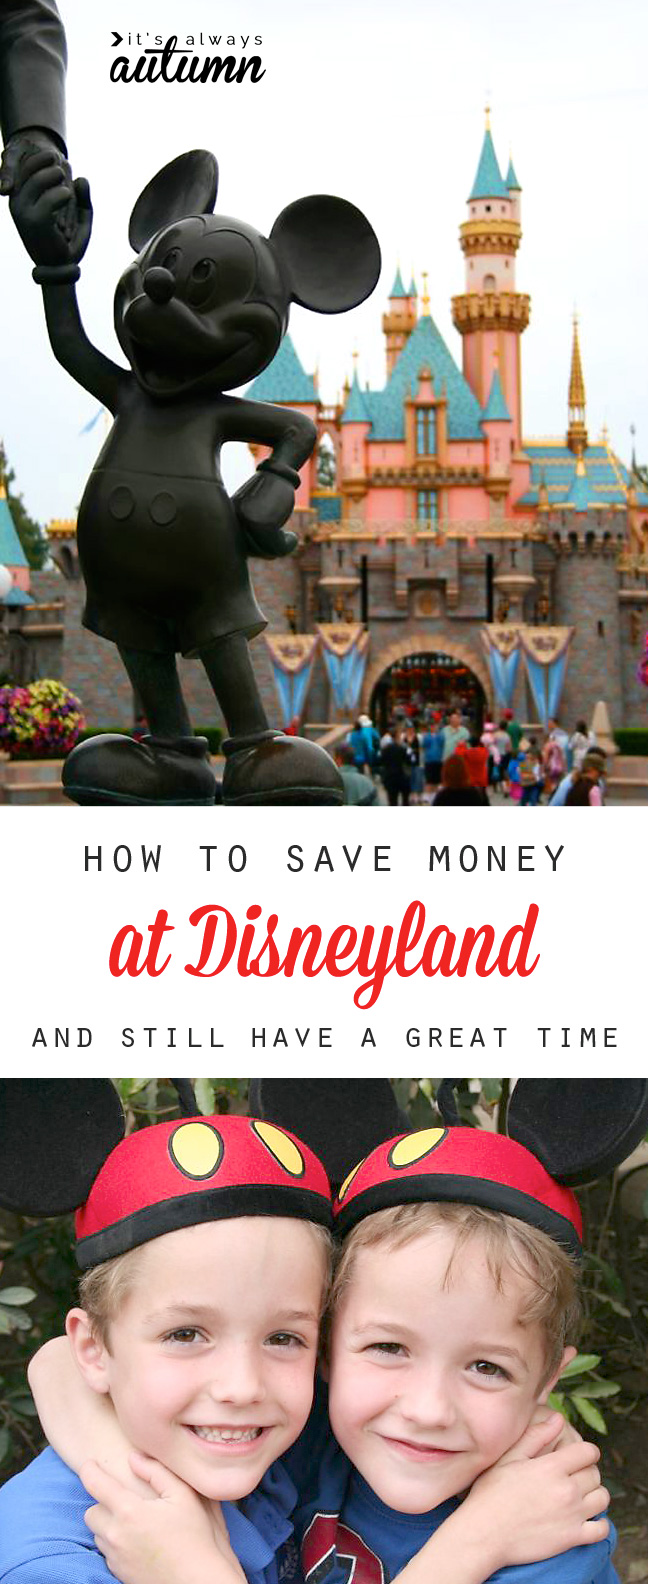 Great tips for saving money at Disneyland without sacrificing the fun! Disney on a budget.